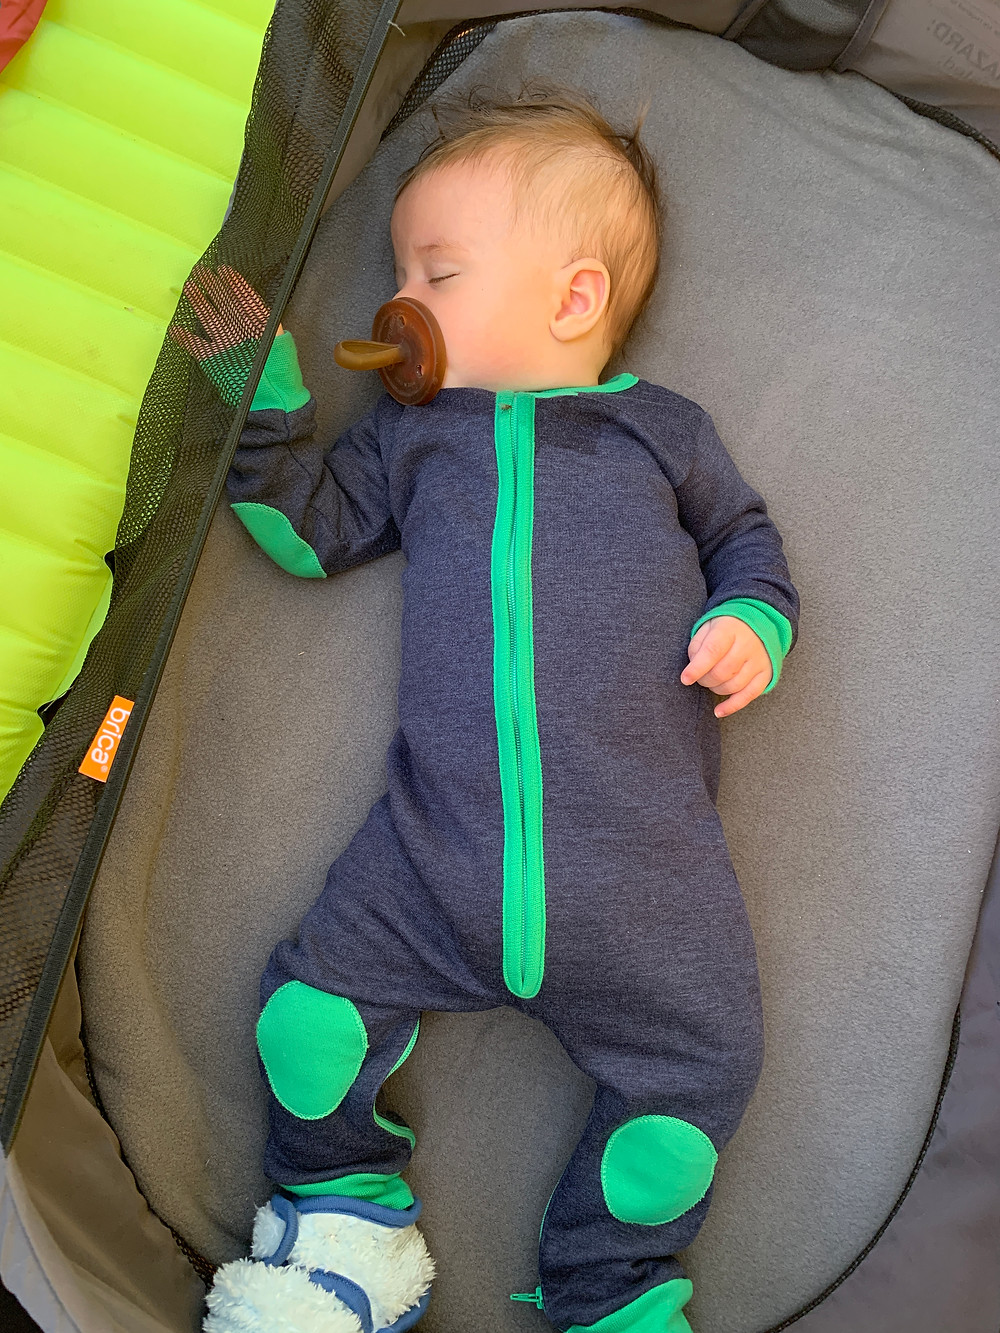 Sleeping infant all warm and cozy while camping